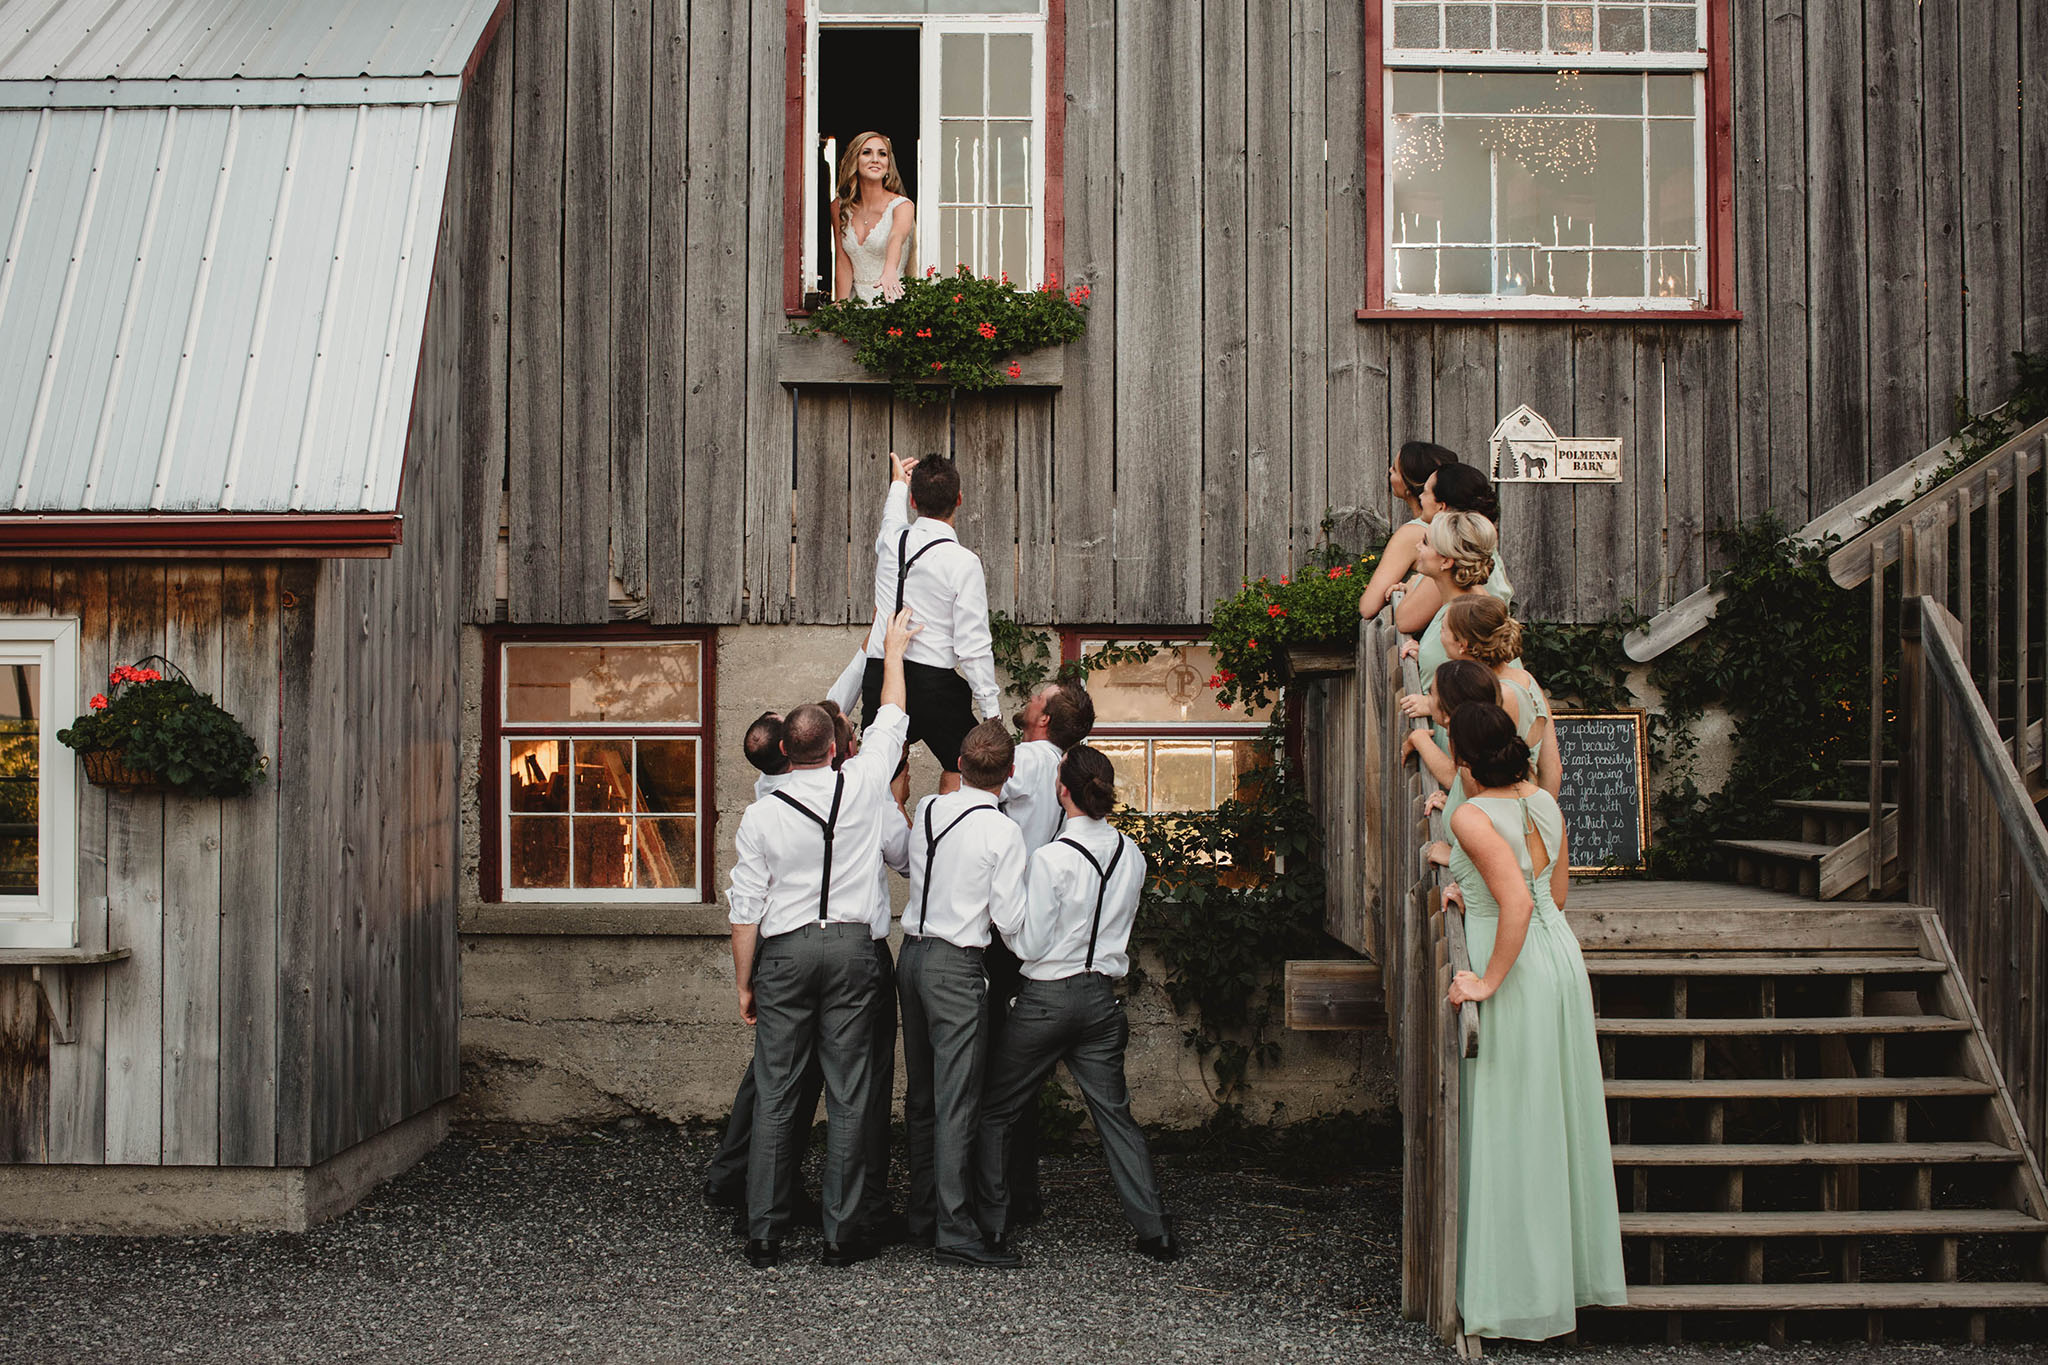 Bride looking out Barn window and below are the groom with the groomsmen lifting him up to the window.